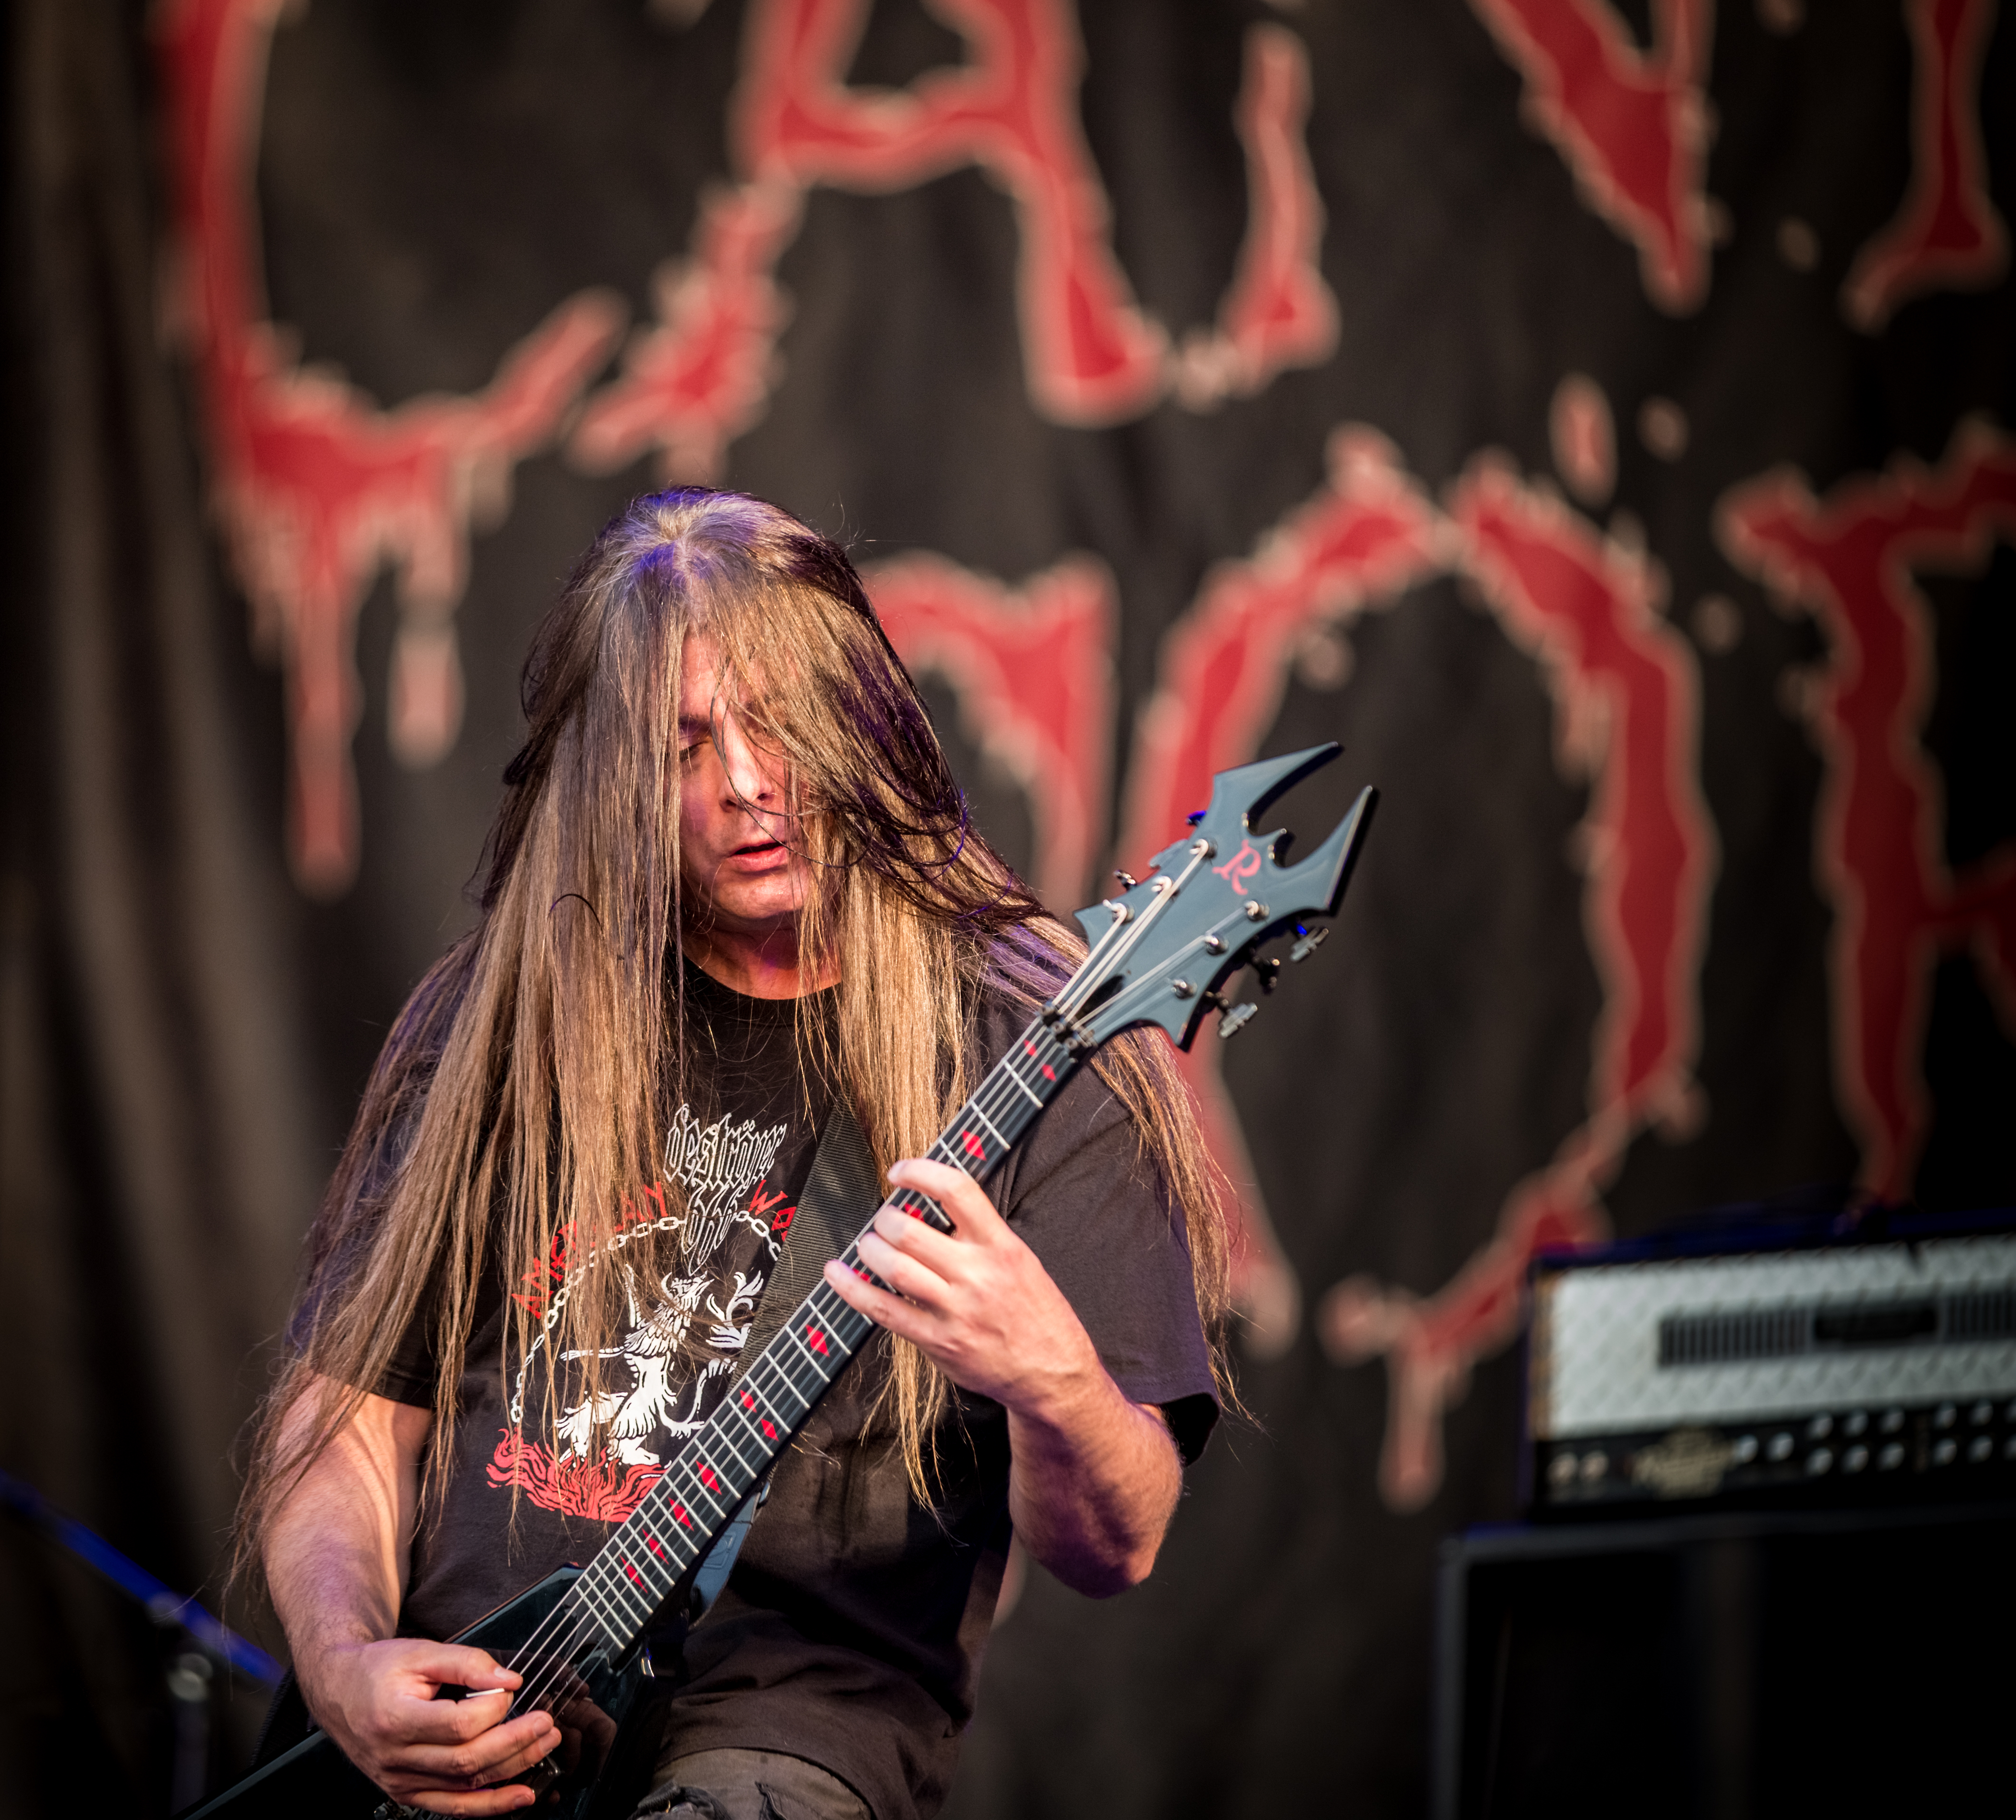 Cannibal corpse live at jakarta #1